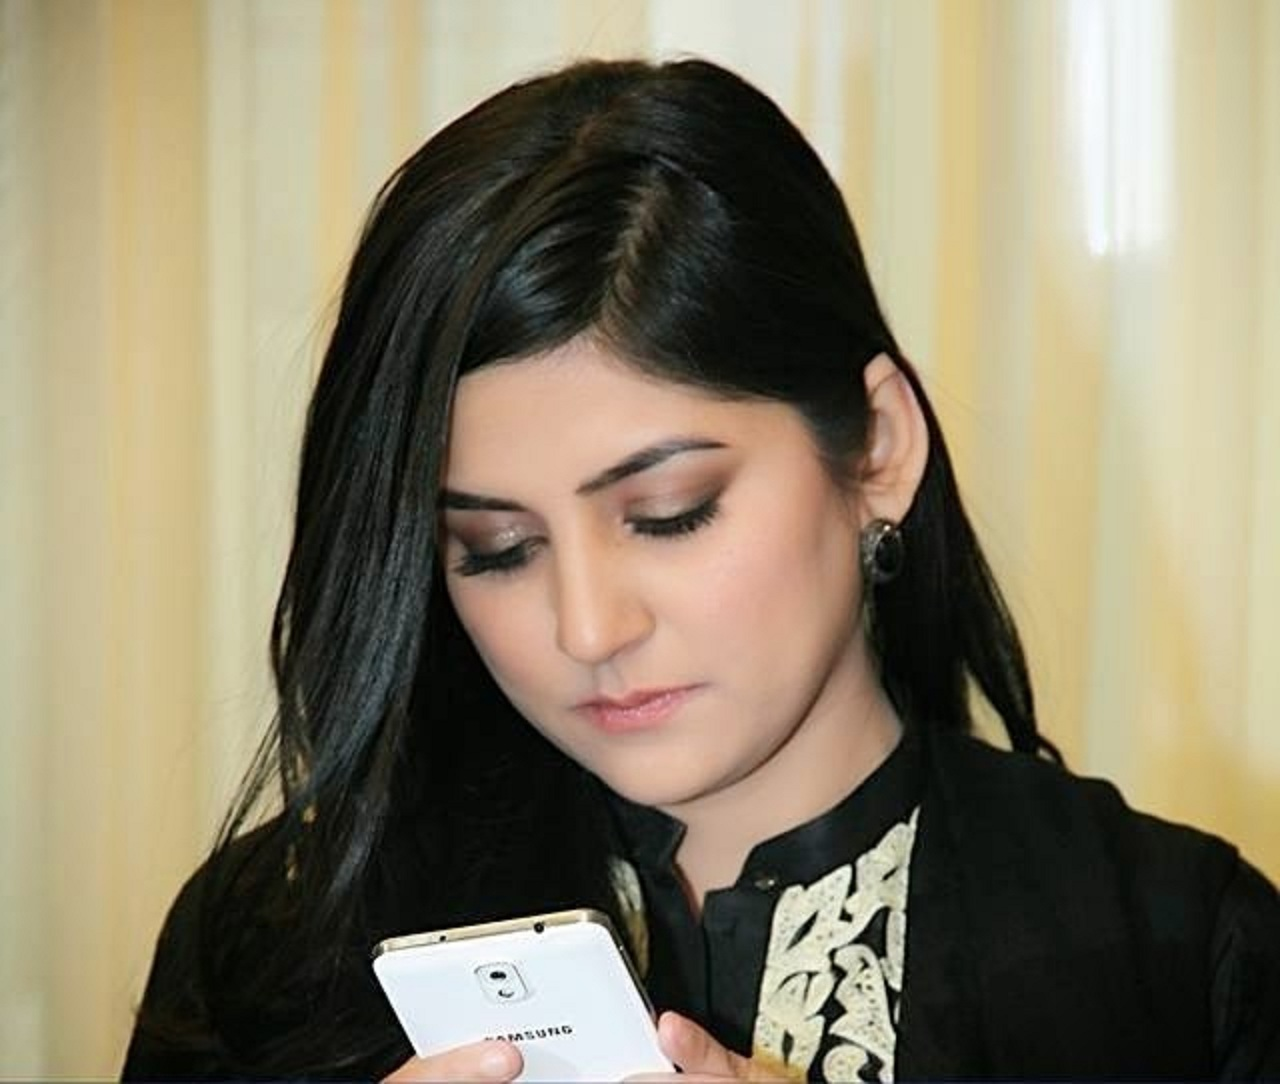 Very Cute Girl Hd Wallpapers Sanam Baloch Images Hd Wallpaper All 4u Wallpaper